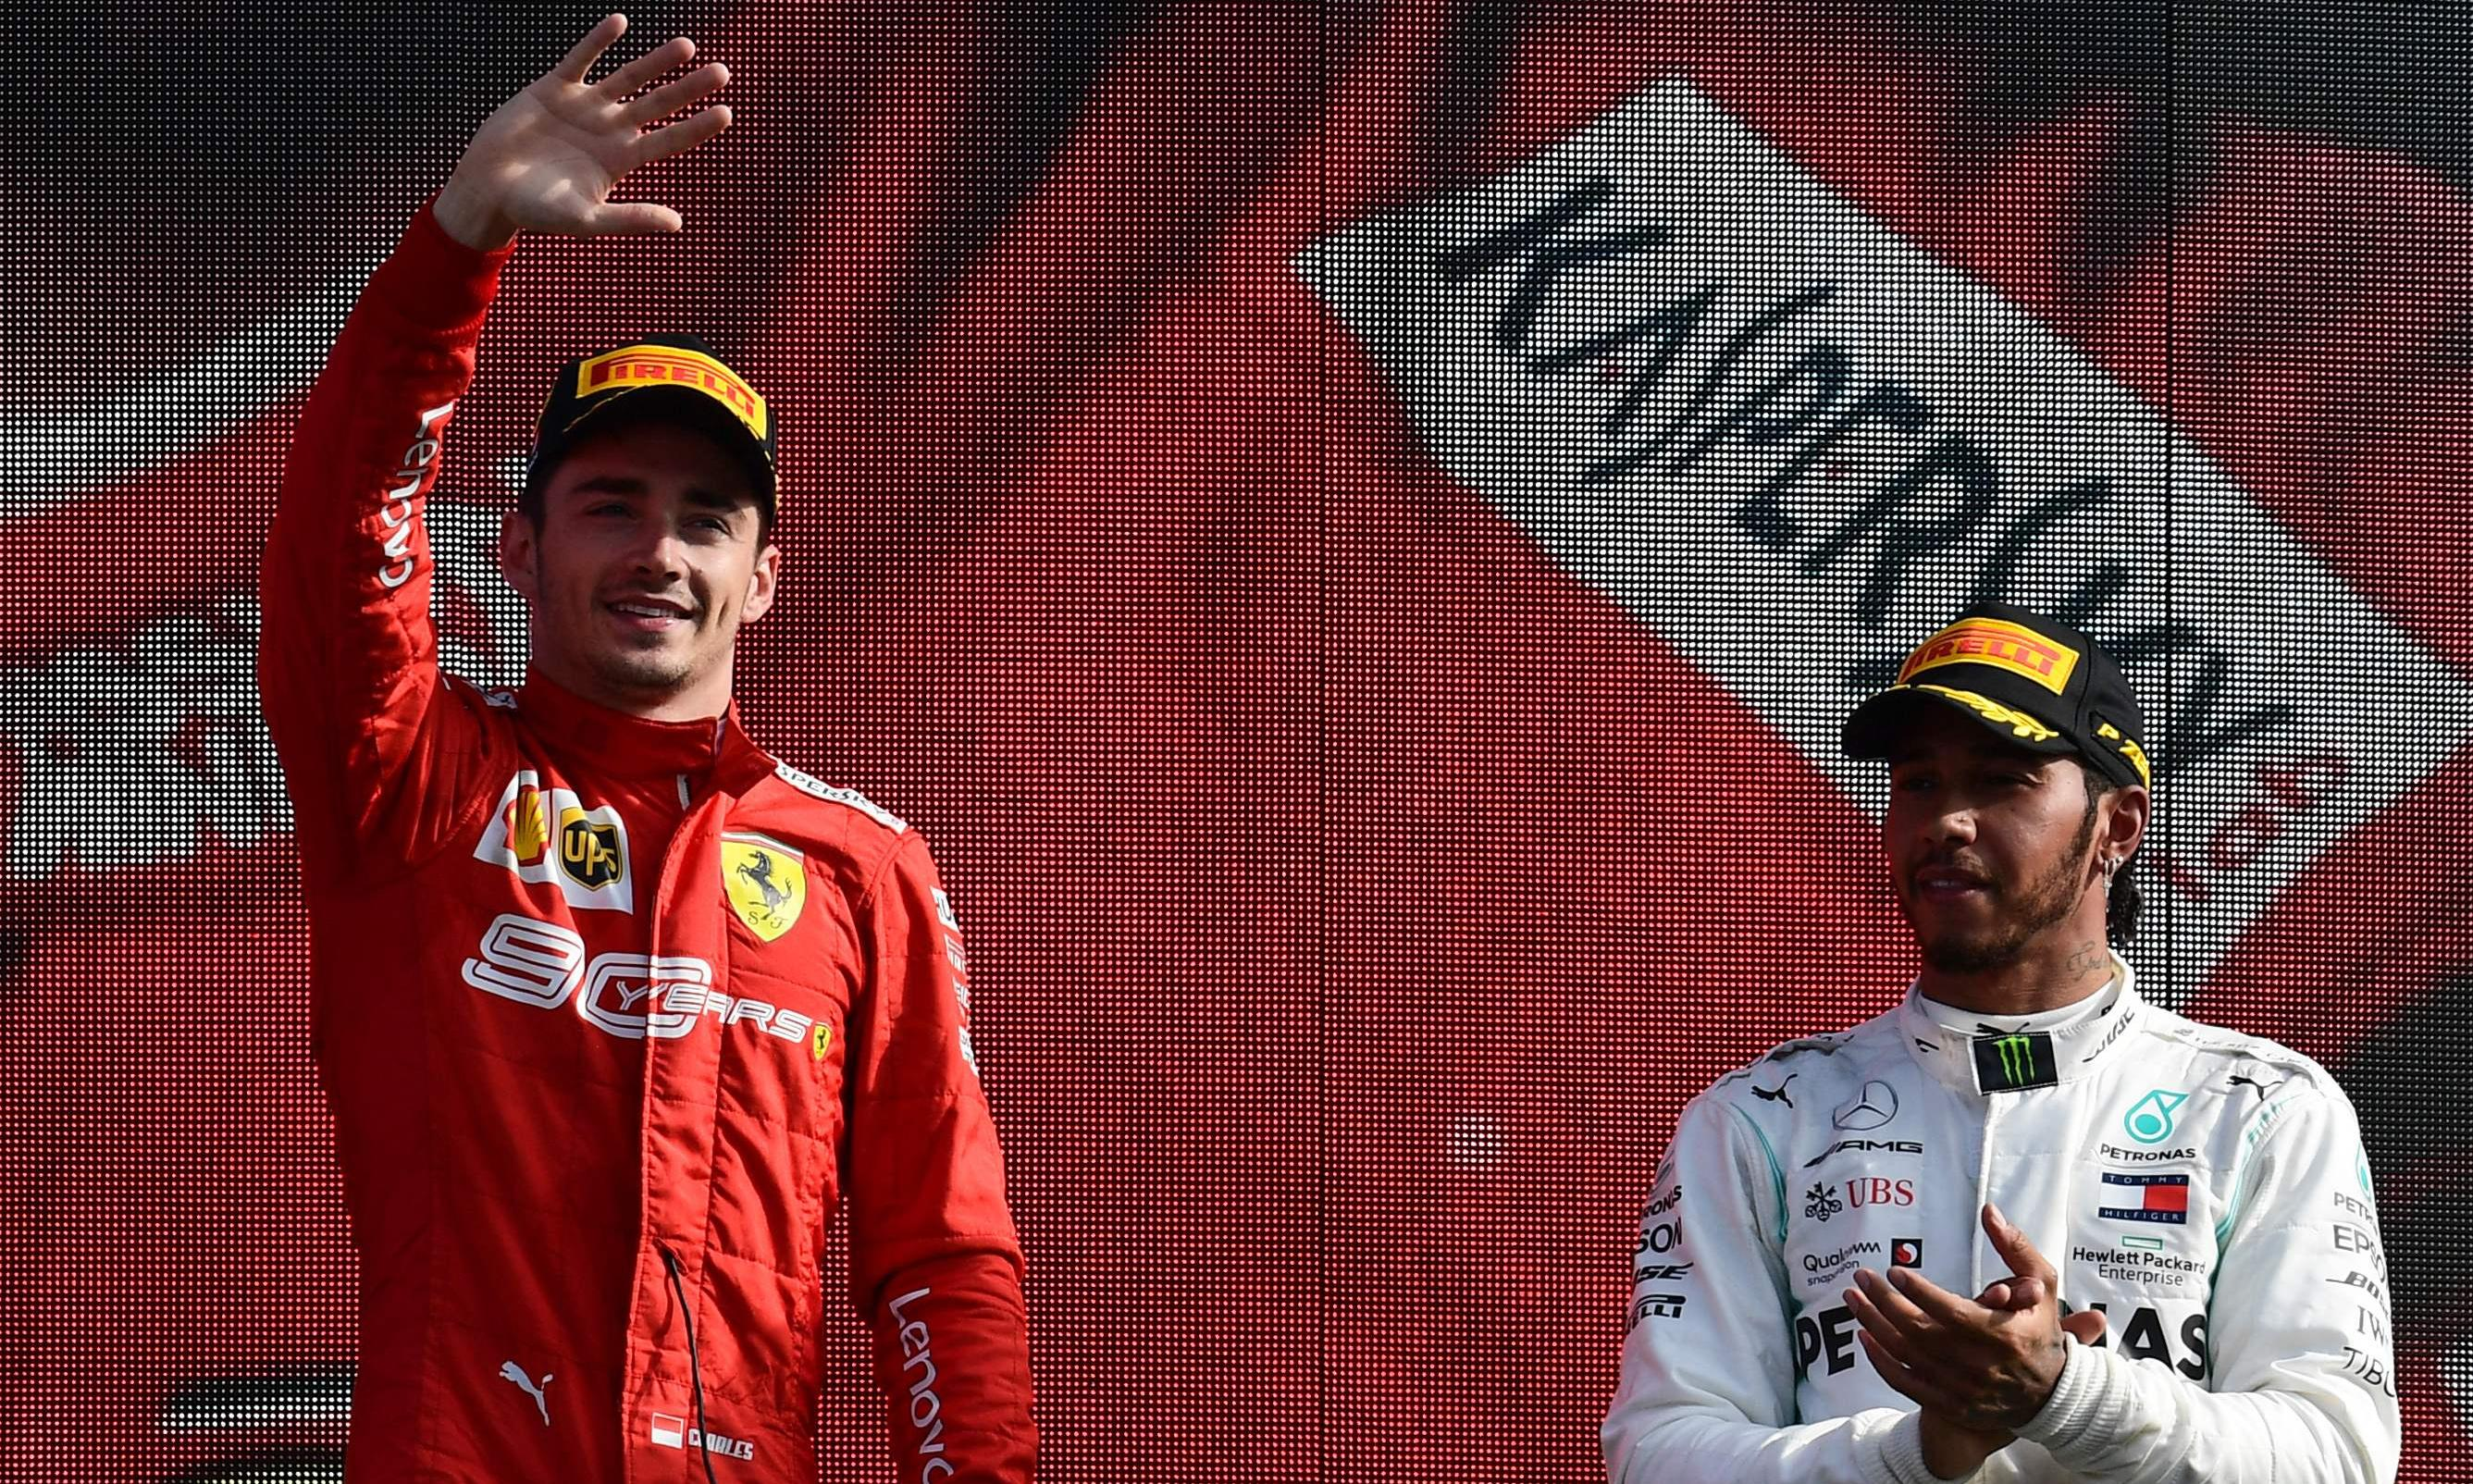 Lewis Hamilton wants a 'talk' with Leclerc after Monza F1 incident